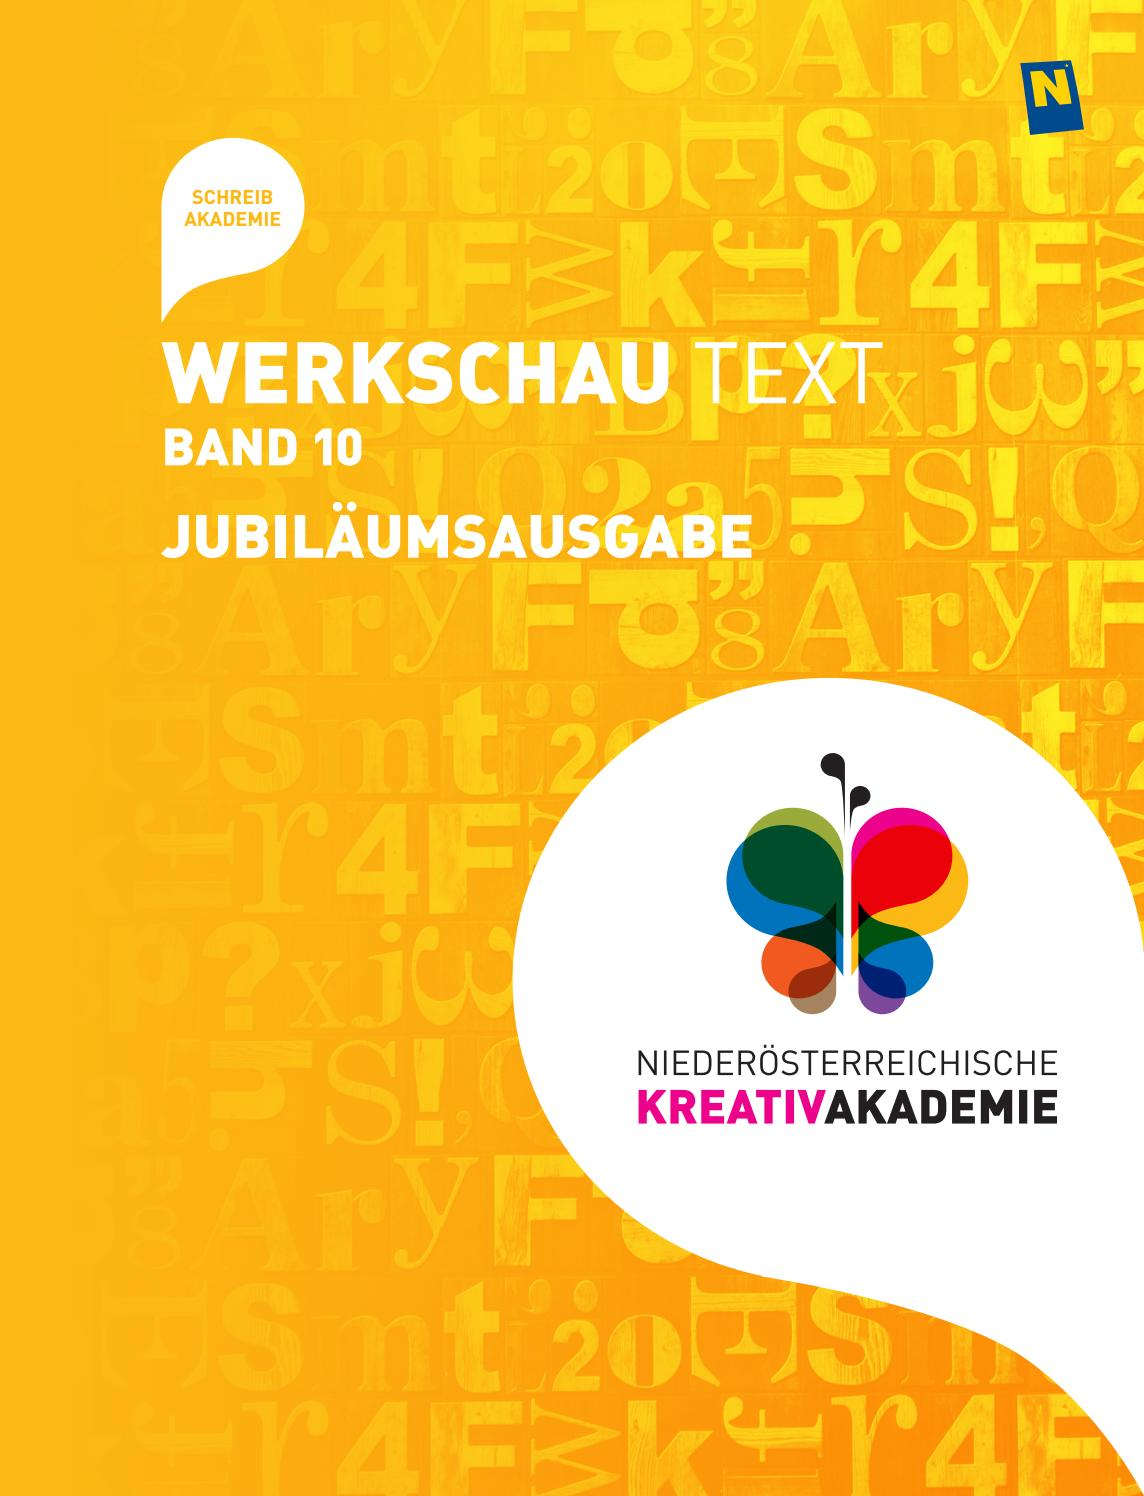 Werkschau Text Band 10 by NÖ KREATIV GmbH - issuu